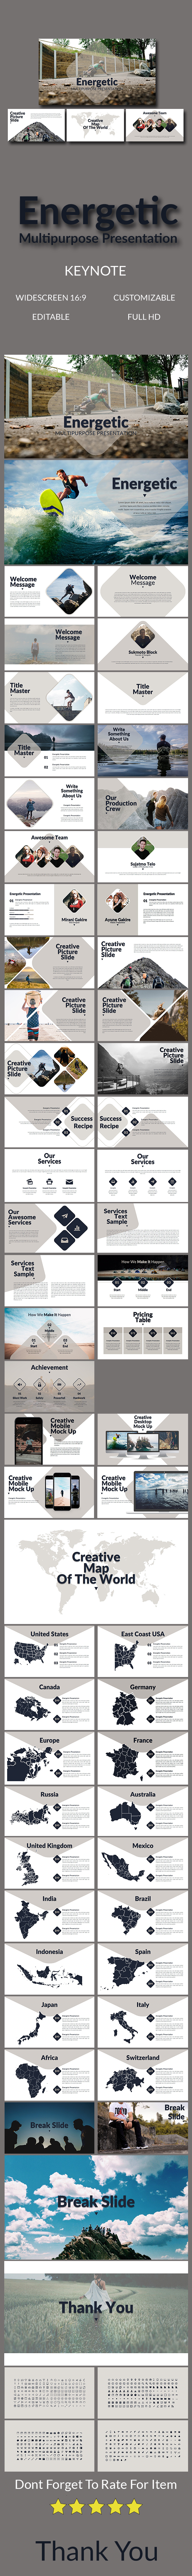 Energetic Multipurpose Presentation - Abstract Keynote Templates